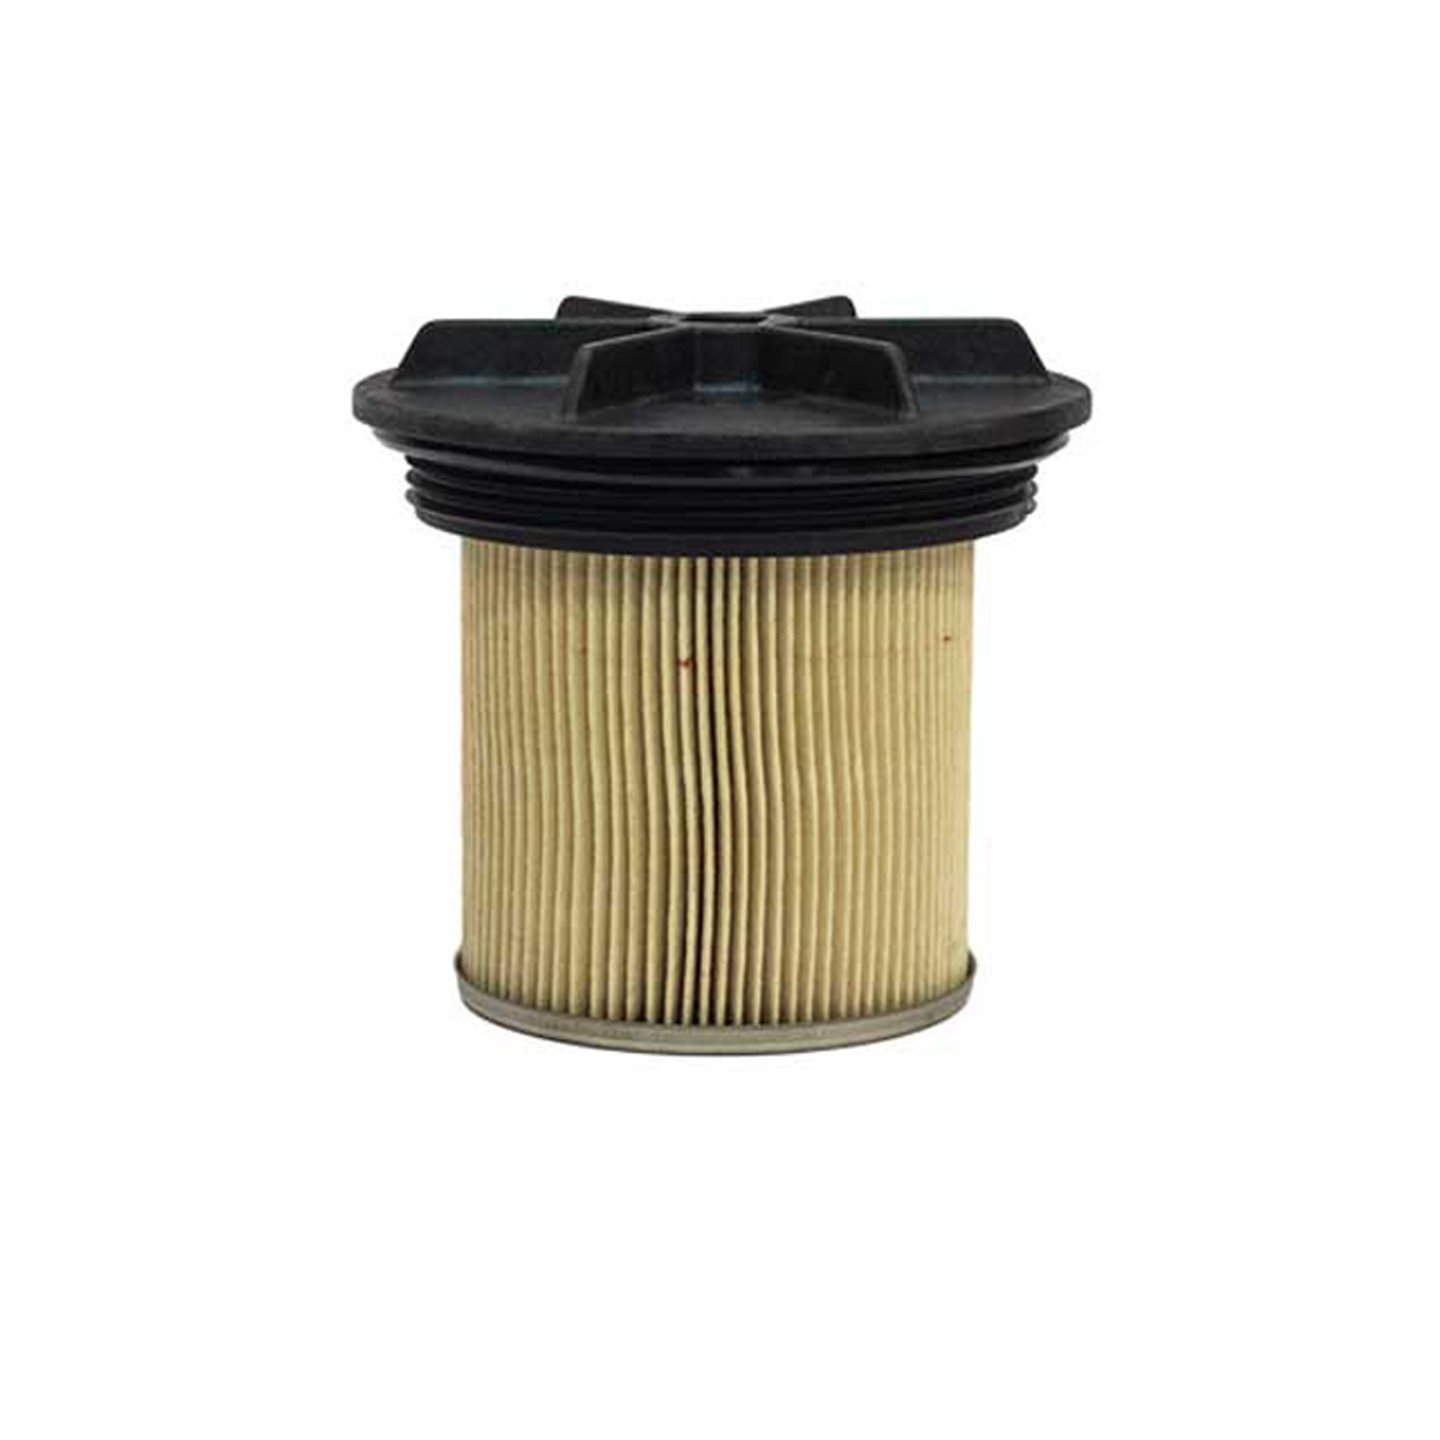 Fuel Filter With Cap Fits 95 98 Ford 73l Diesel Automotive 1996 F250